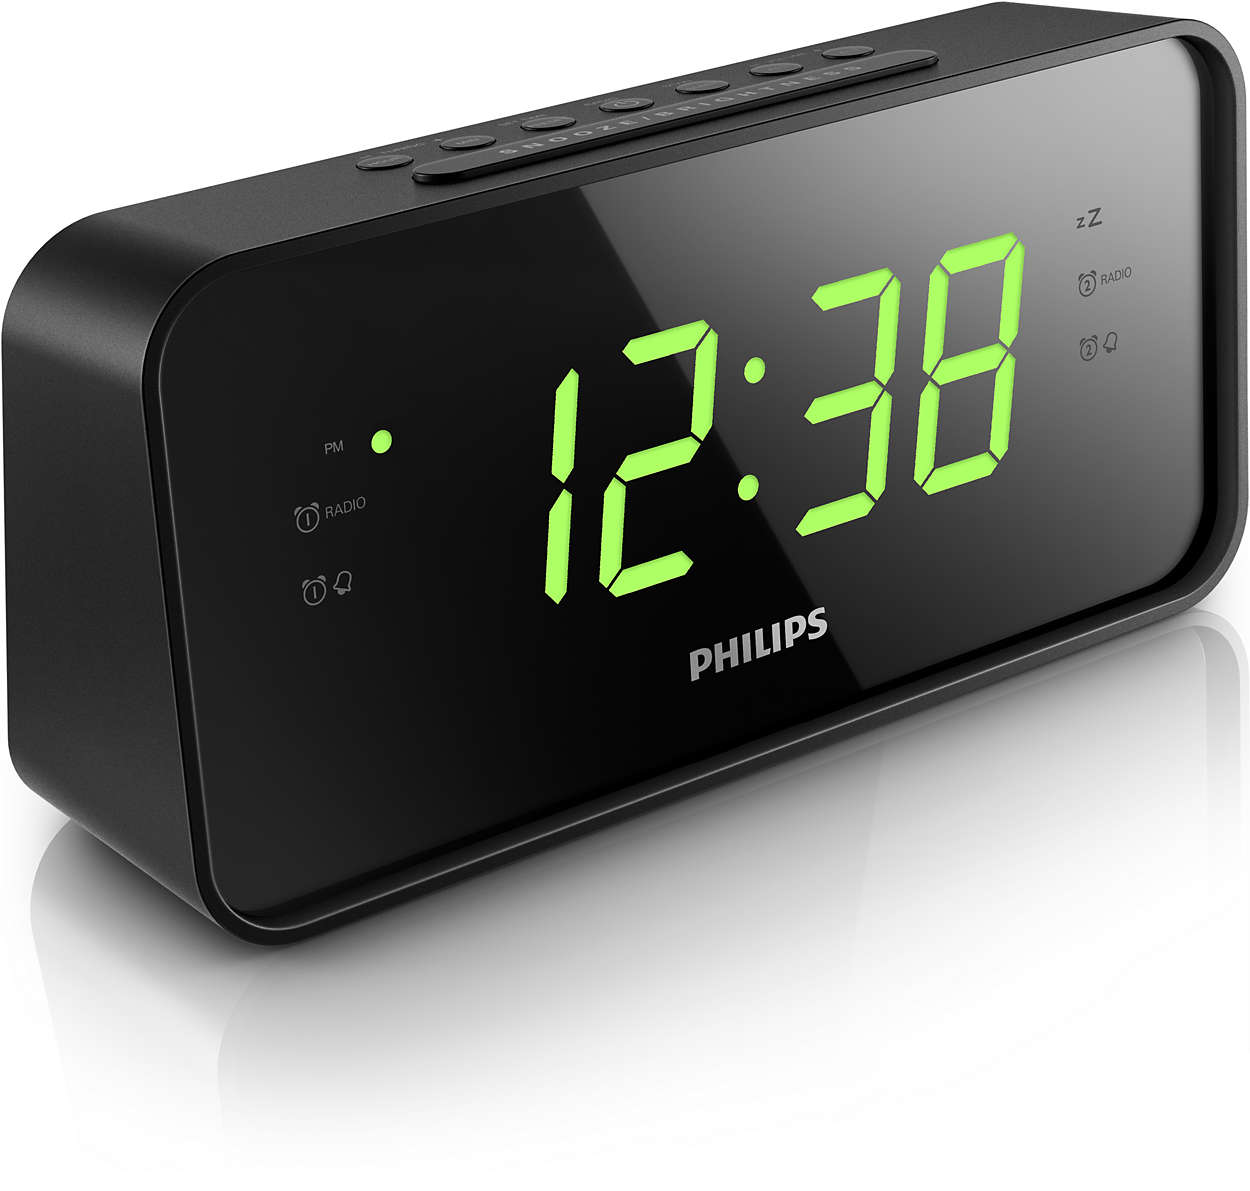 large number alarm clock radio unique alarm clock. Black Bedroom Furniture Sets. Home Design Ideas